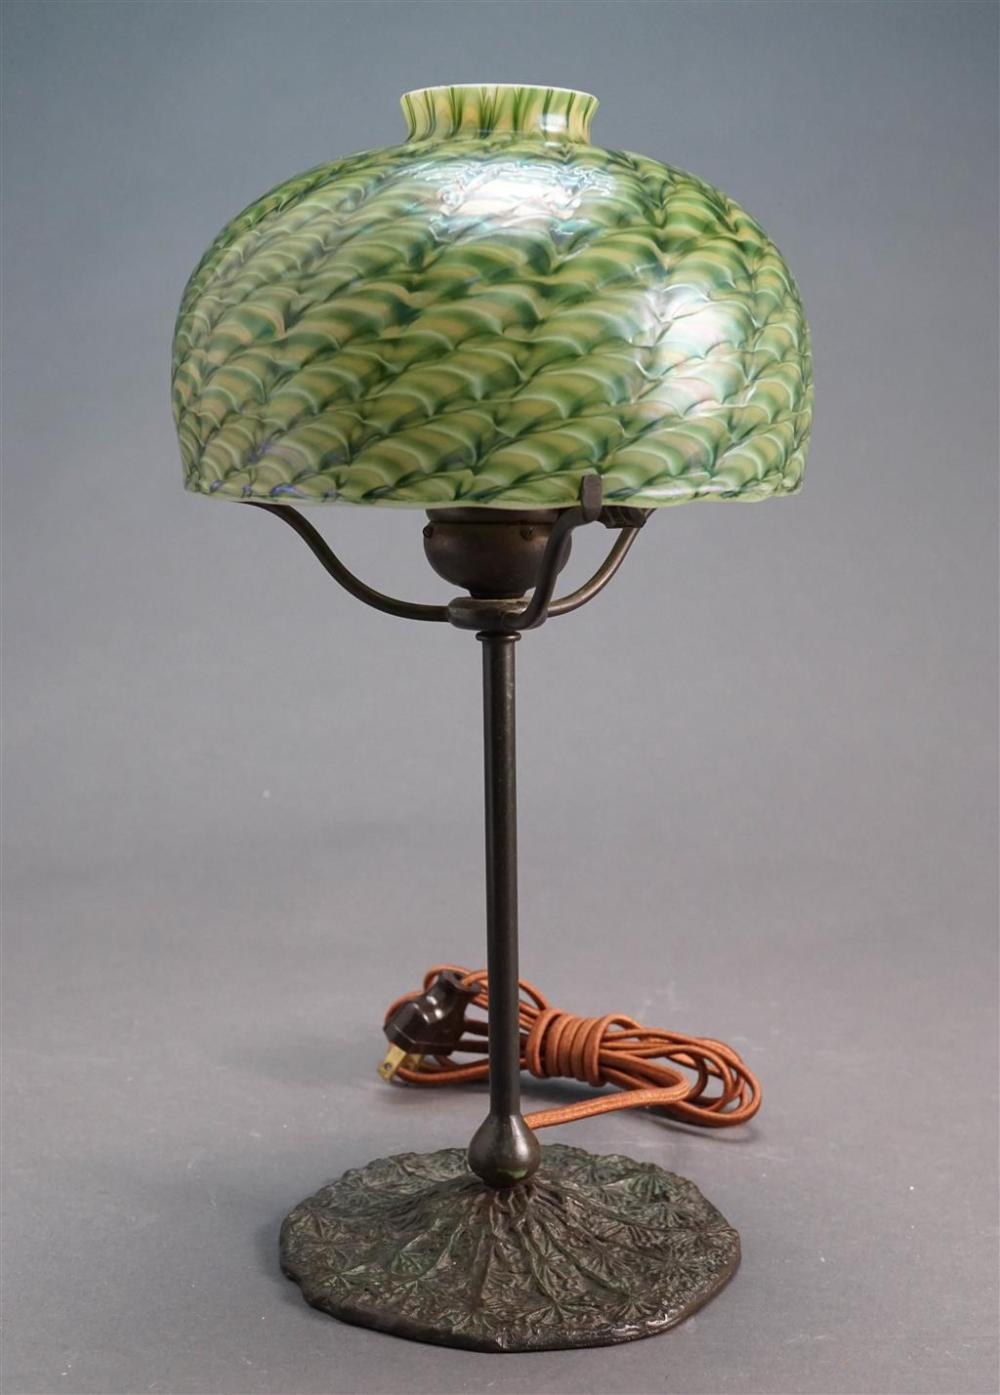 Lundberg Studios Art Glass Shade with a Bronzed Finish Iron Base, H overall: 13-3/4, D of shade: 7 in